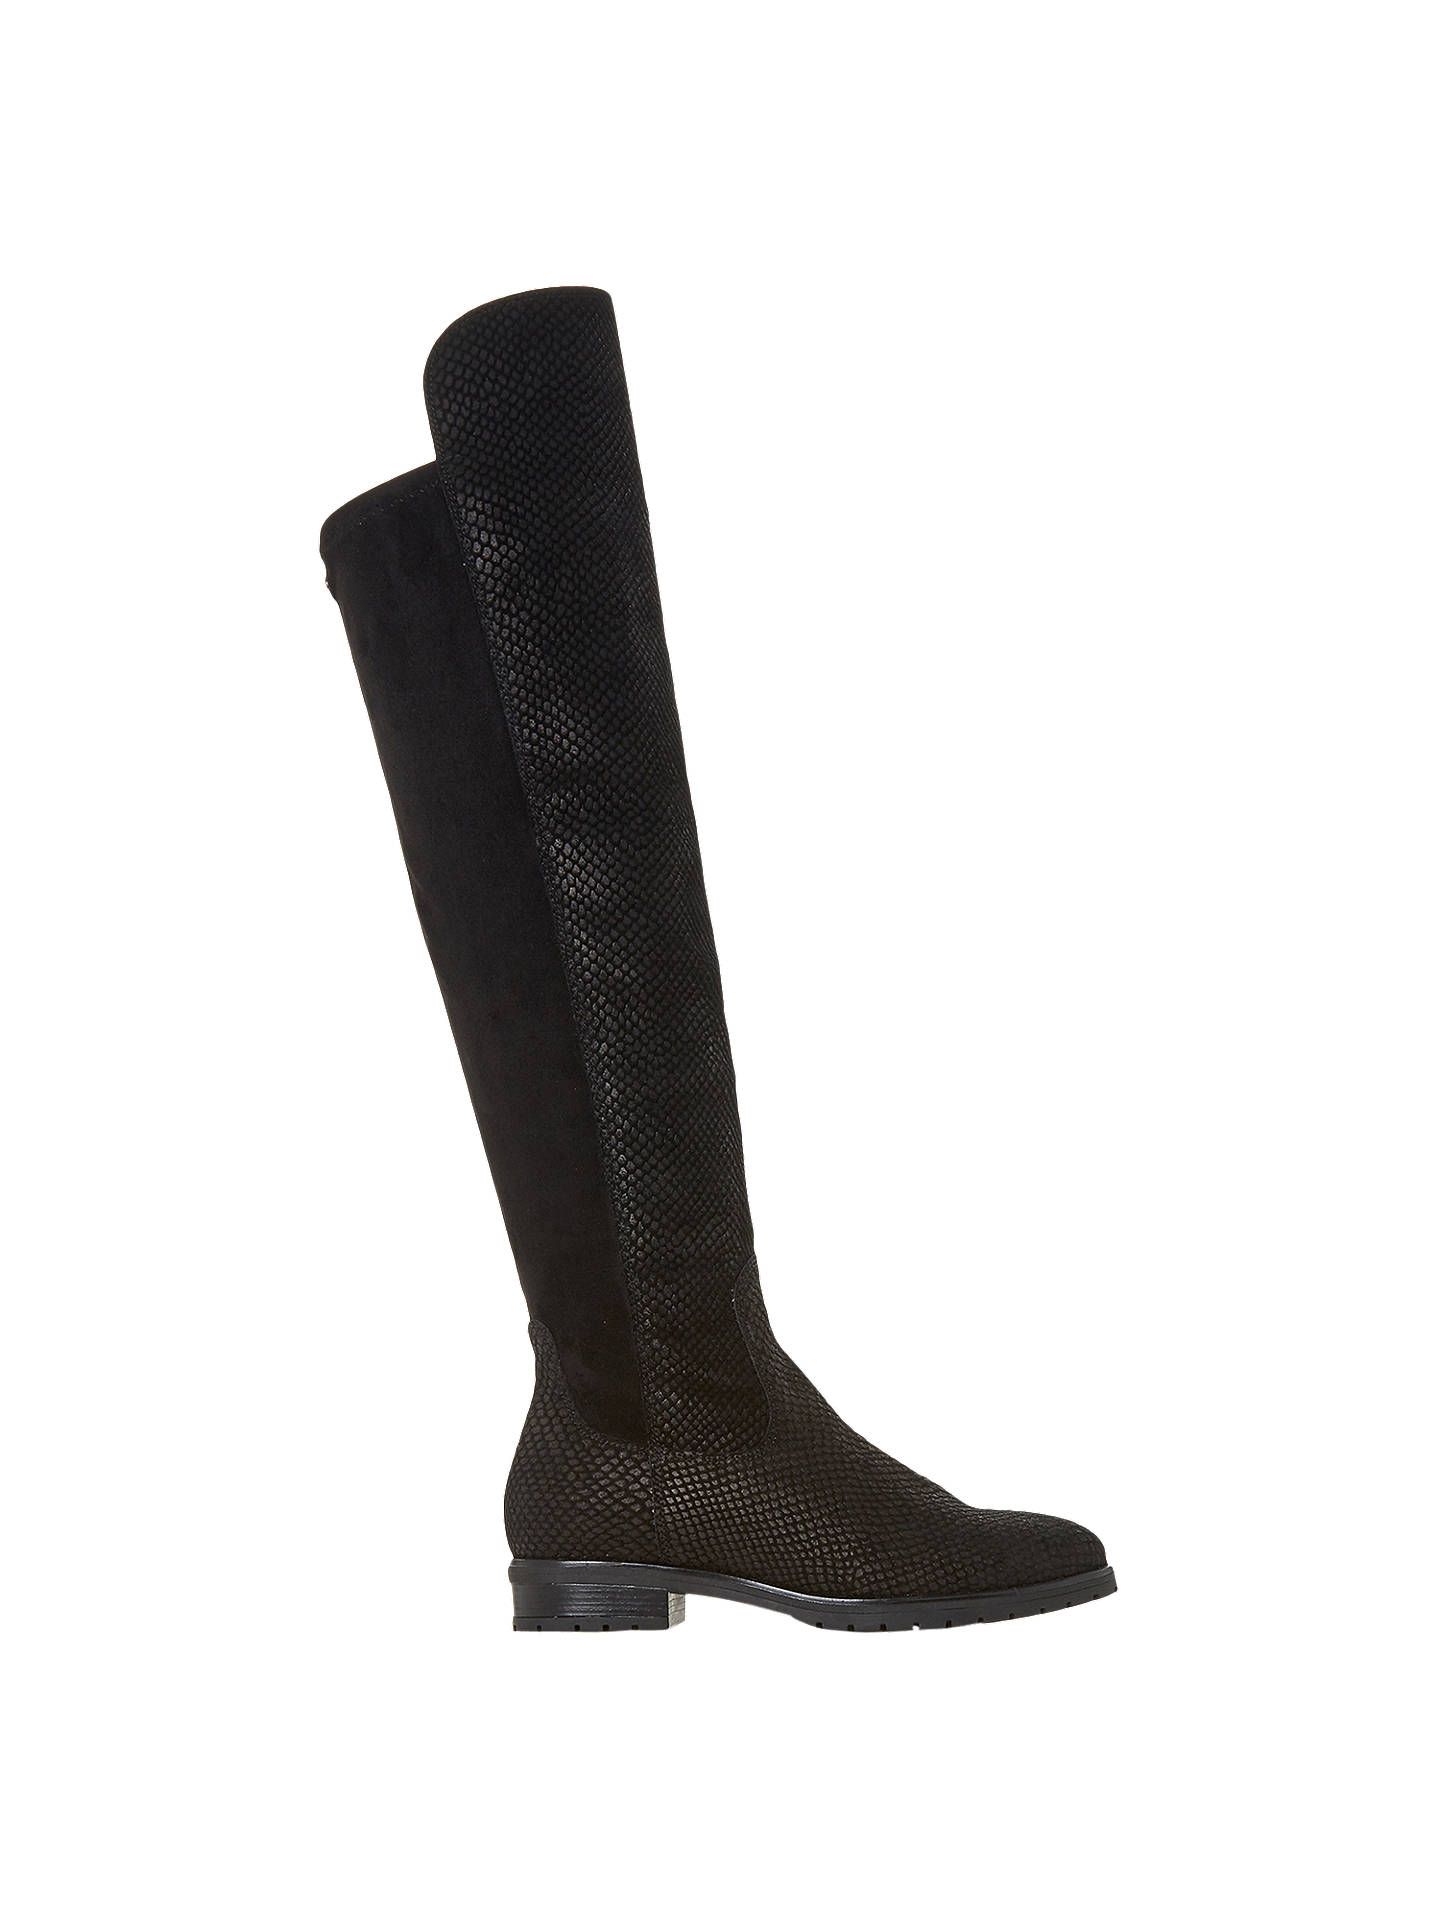 BuyDune Tarrin Over the Knee Boots, Black Textured Leather, 3 Online at johnlewis.com